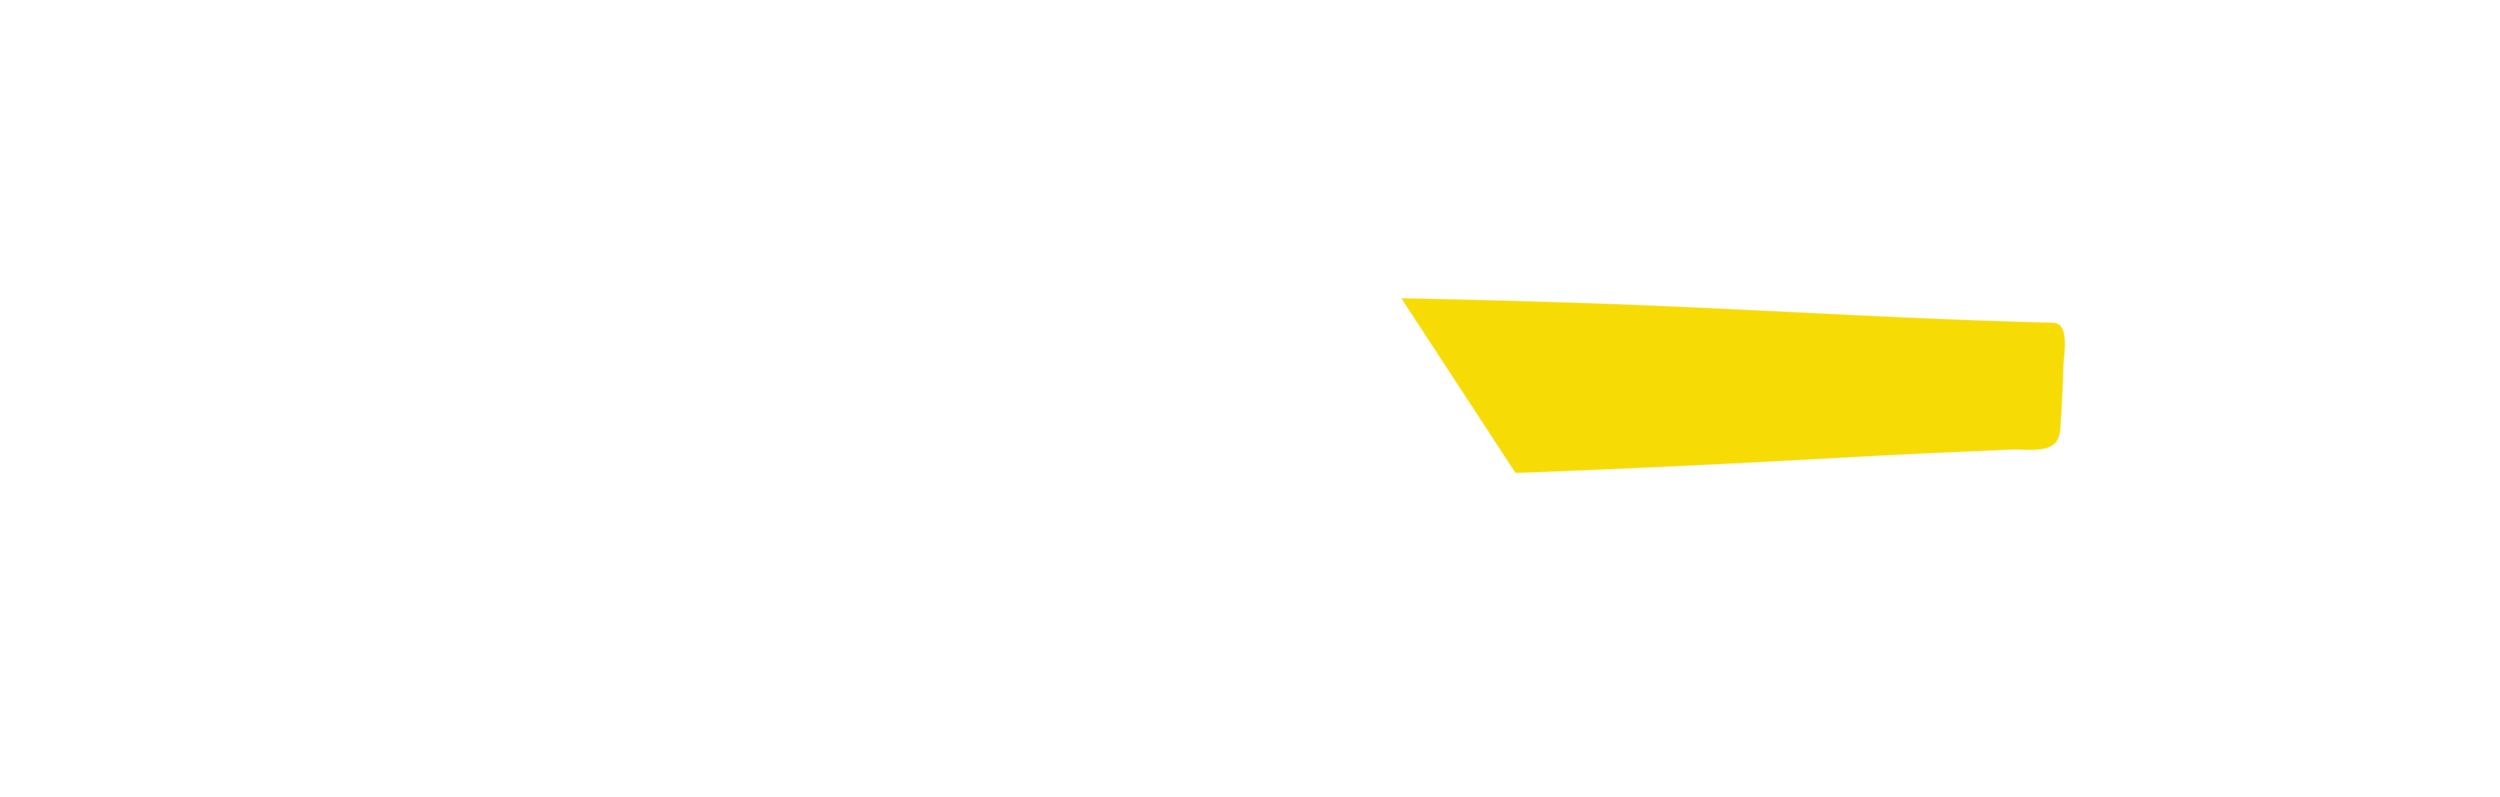 Paint_A_C_Yellow.png